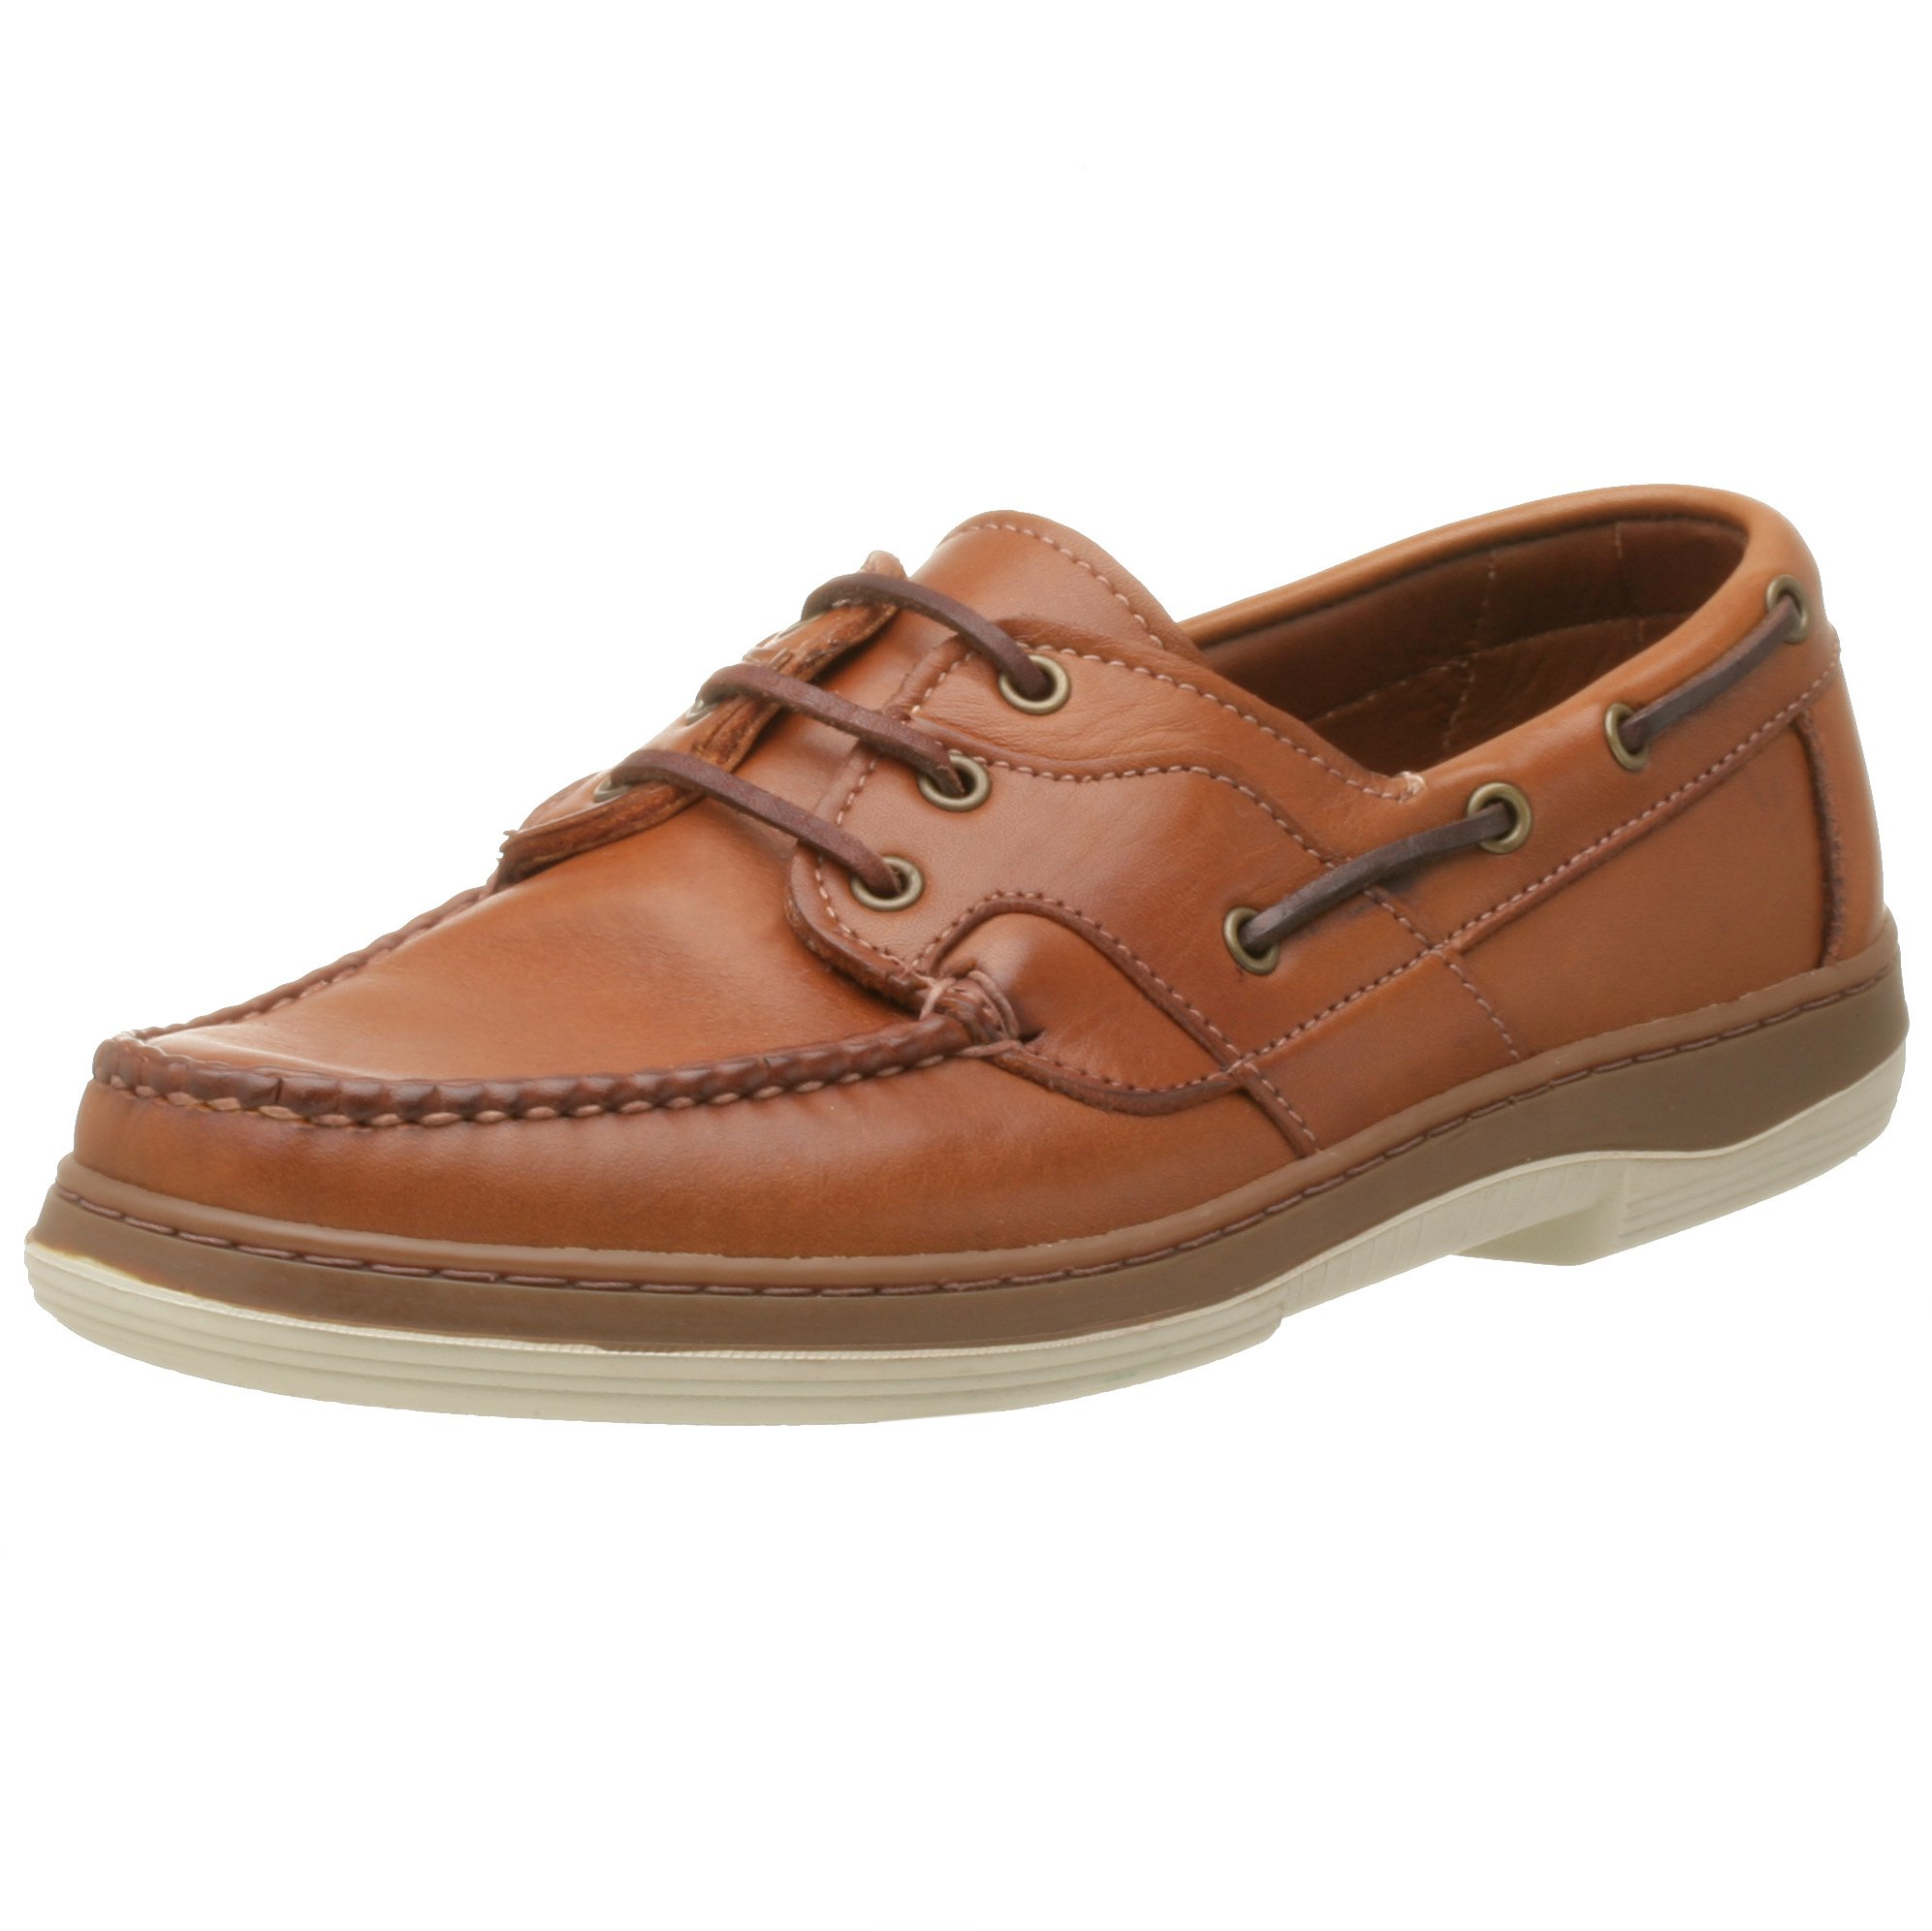 Allen Edmonds Men's Eastport Boat Shoe,Tan,8 D by Allen Edmonds